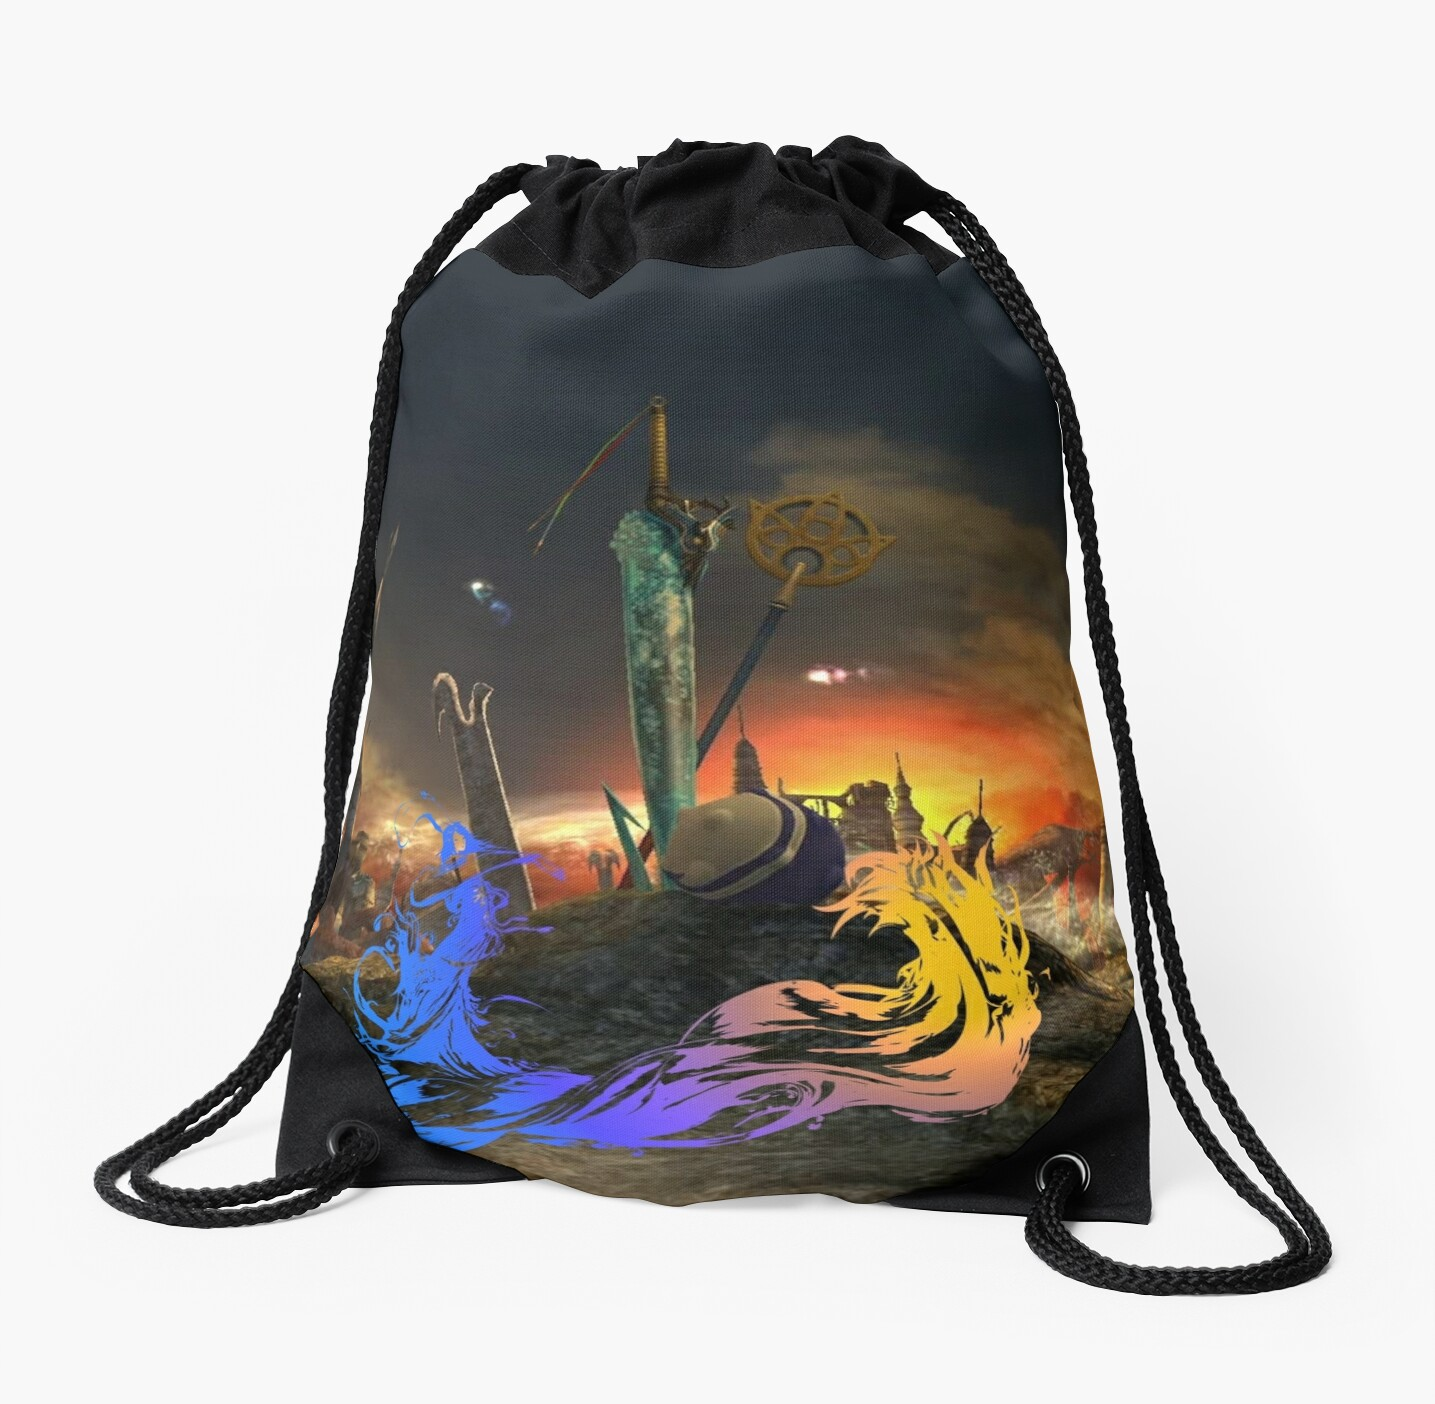 FINAL FANTASY BAG · FINAL FANTASY X ~ this is my story by wayfinder